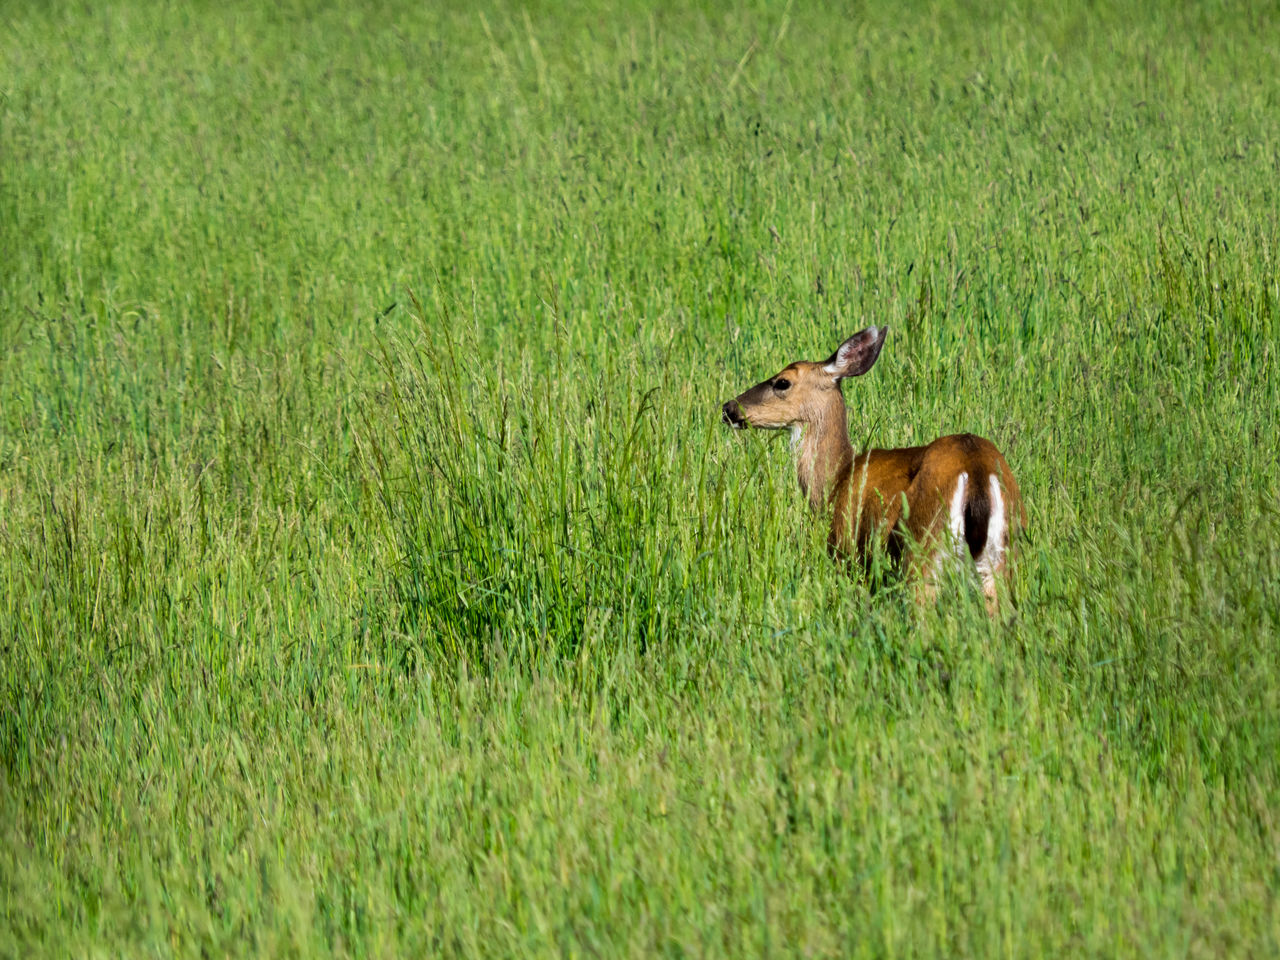 grass, field, nature, animal themes, animals in the wild, day, no people, mammal, green color, growth, one animal, young animal, outdoors